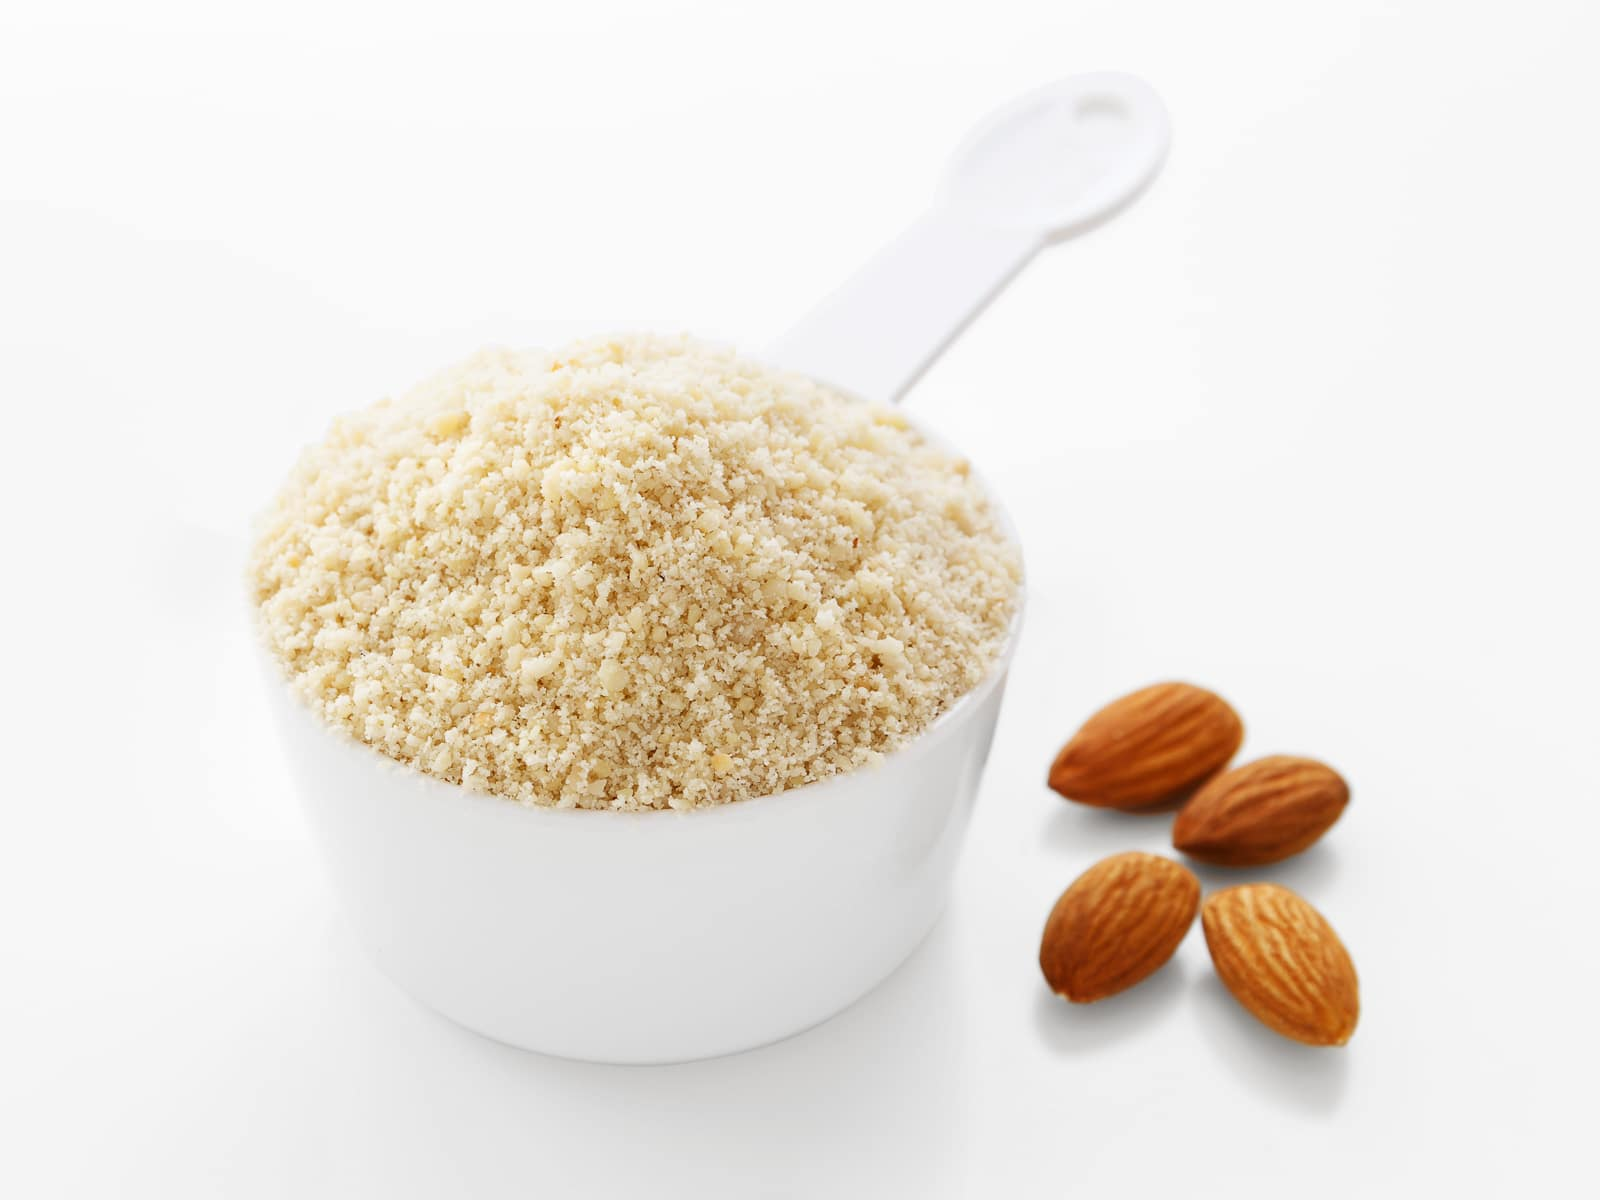 A measuring cup filled over the brim with almond flour